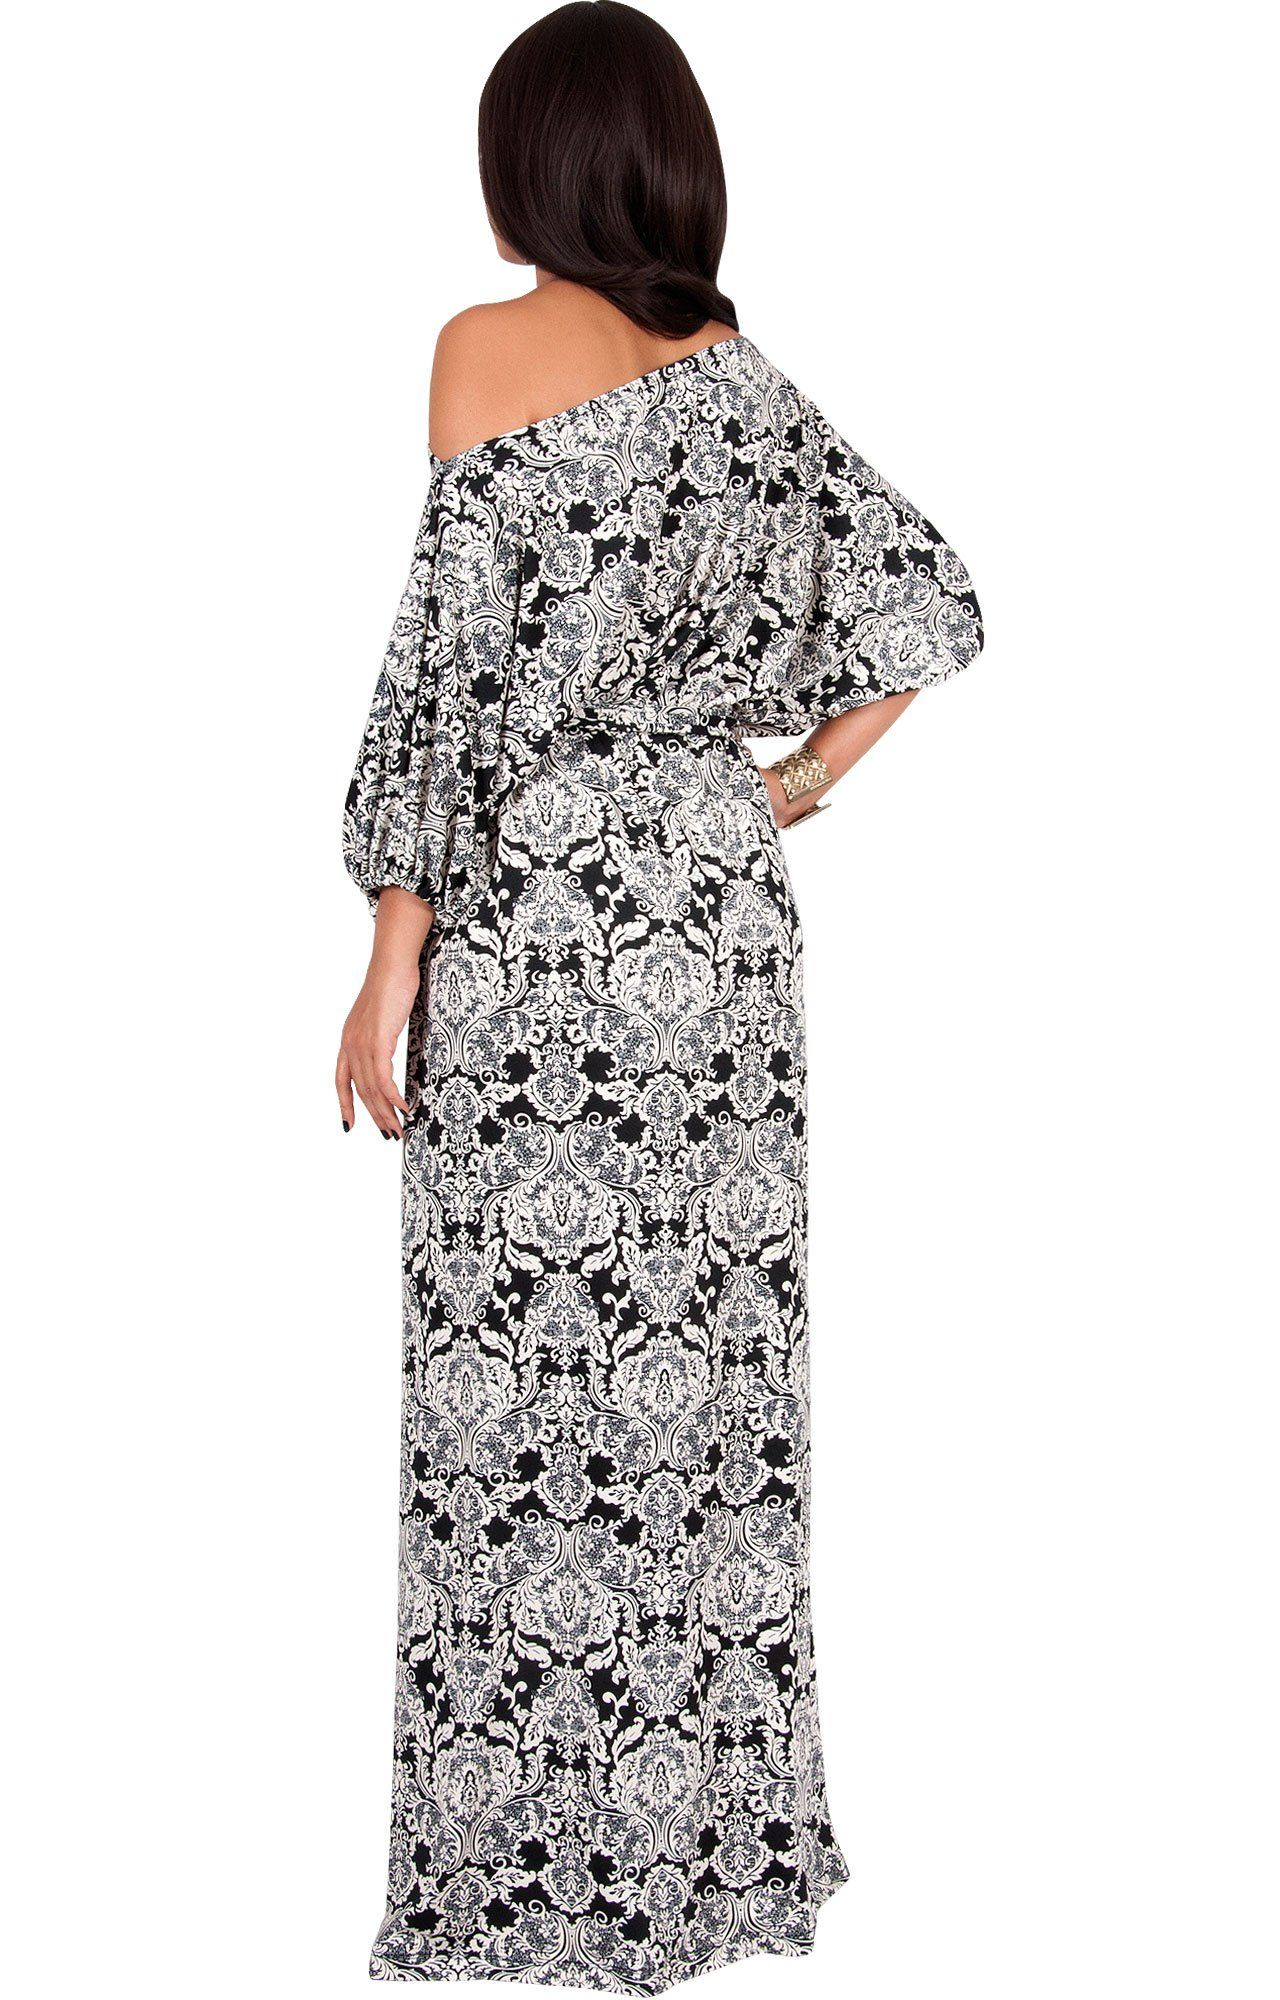 Koh koh women long sexy one off shoulder print casual flowy